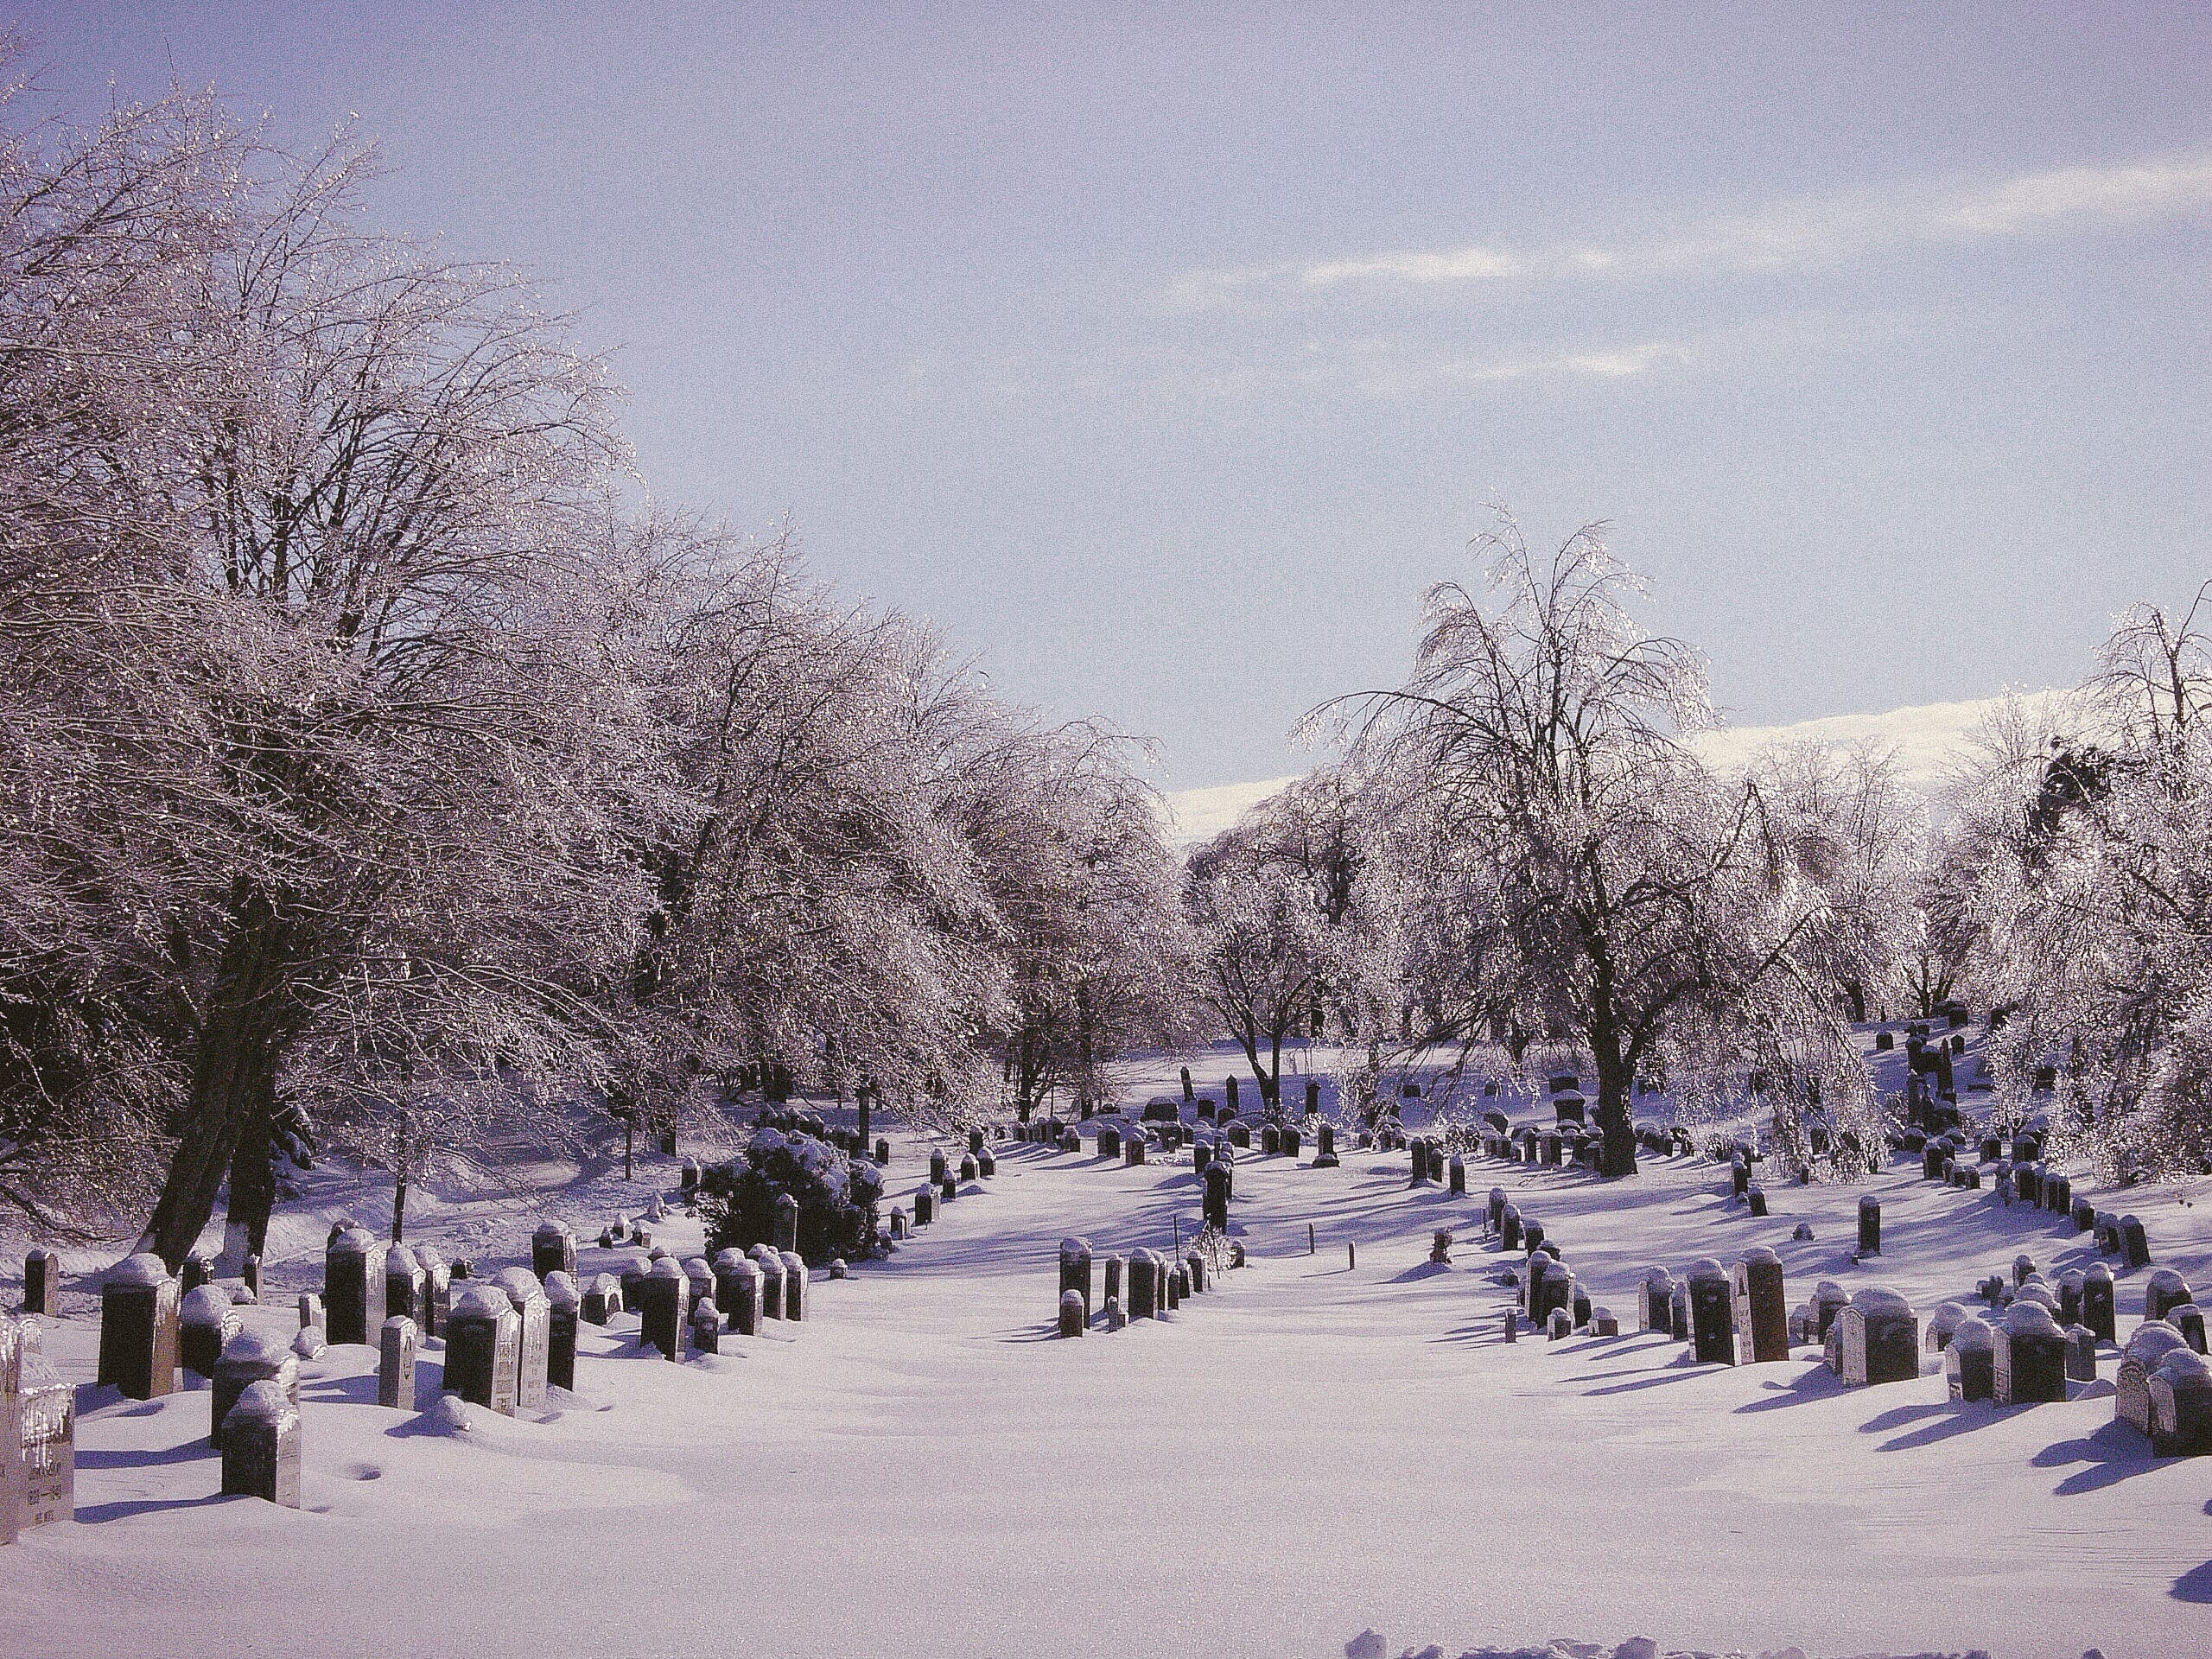 A photograph depicting Saint John Cemetery Covered in Snow